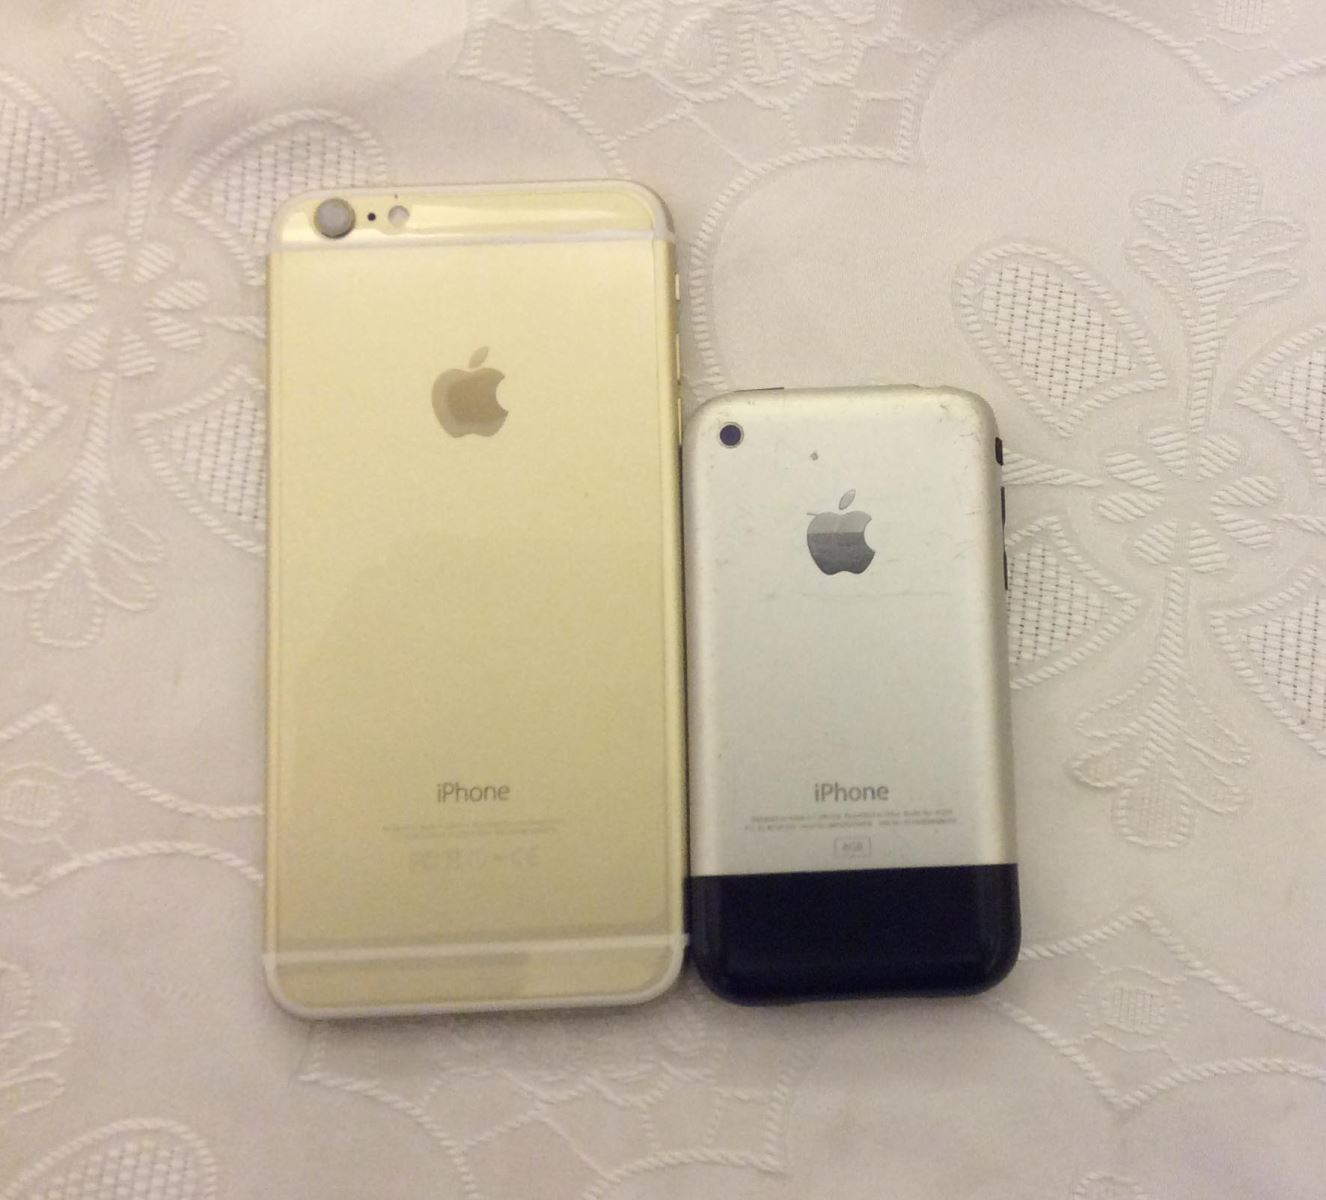 iPhone 6 Plus và iPhone 2G